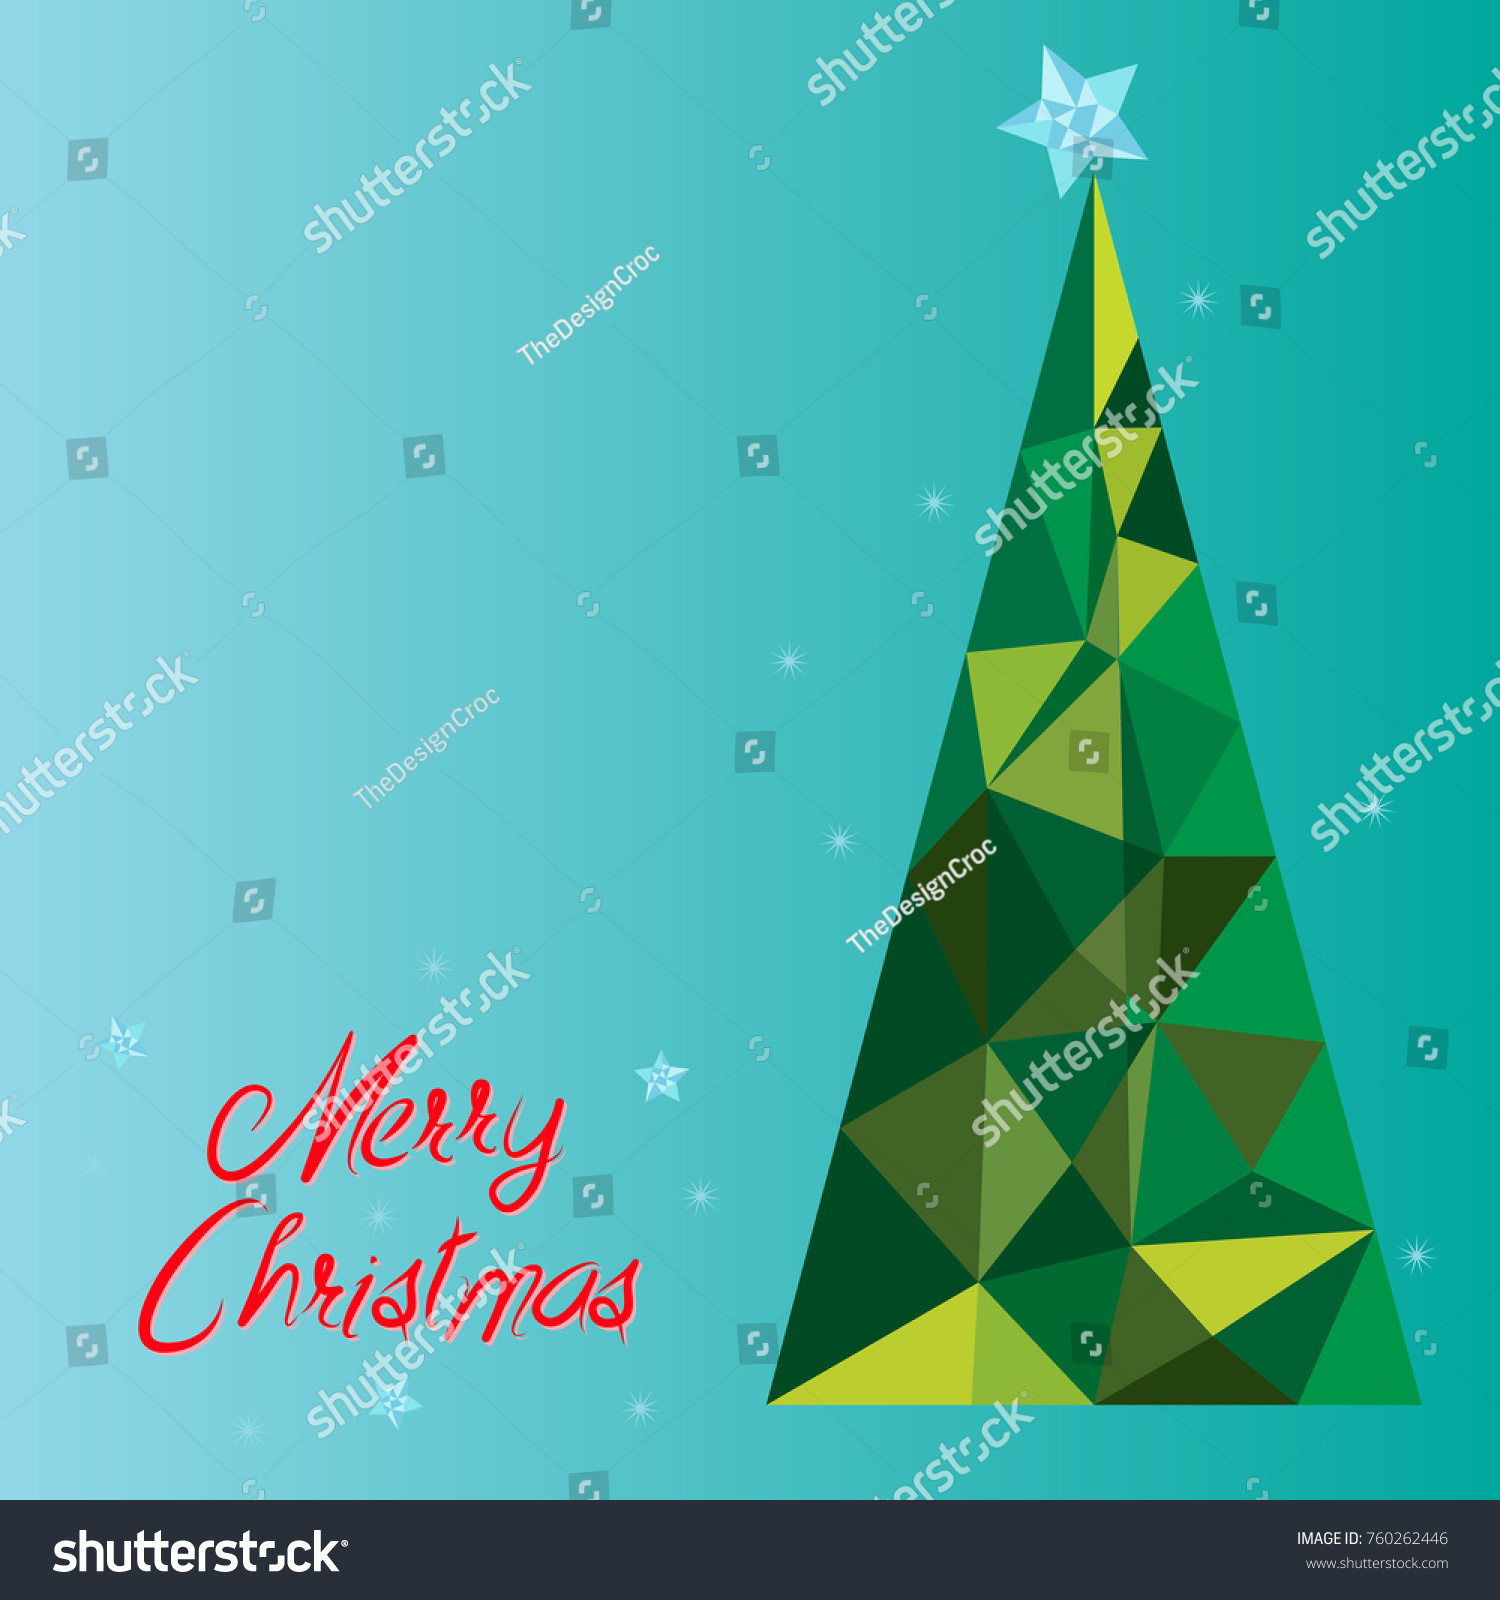 merry christmas card low poly tree stars on blue background ideal for festive winter - Polytree Christmas Tree